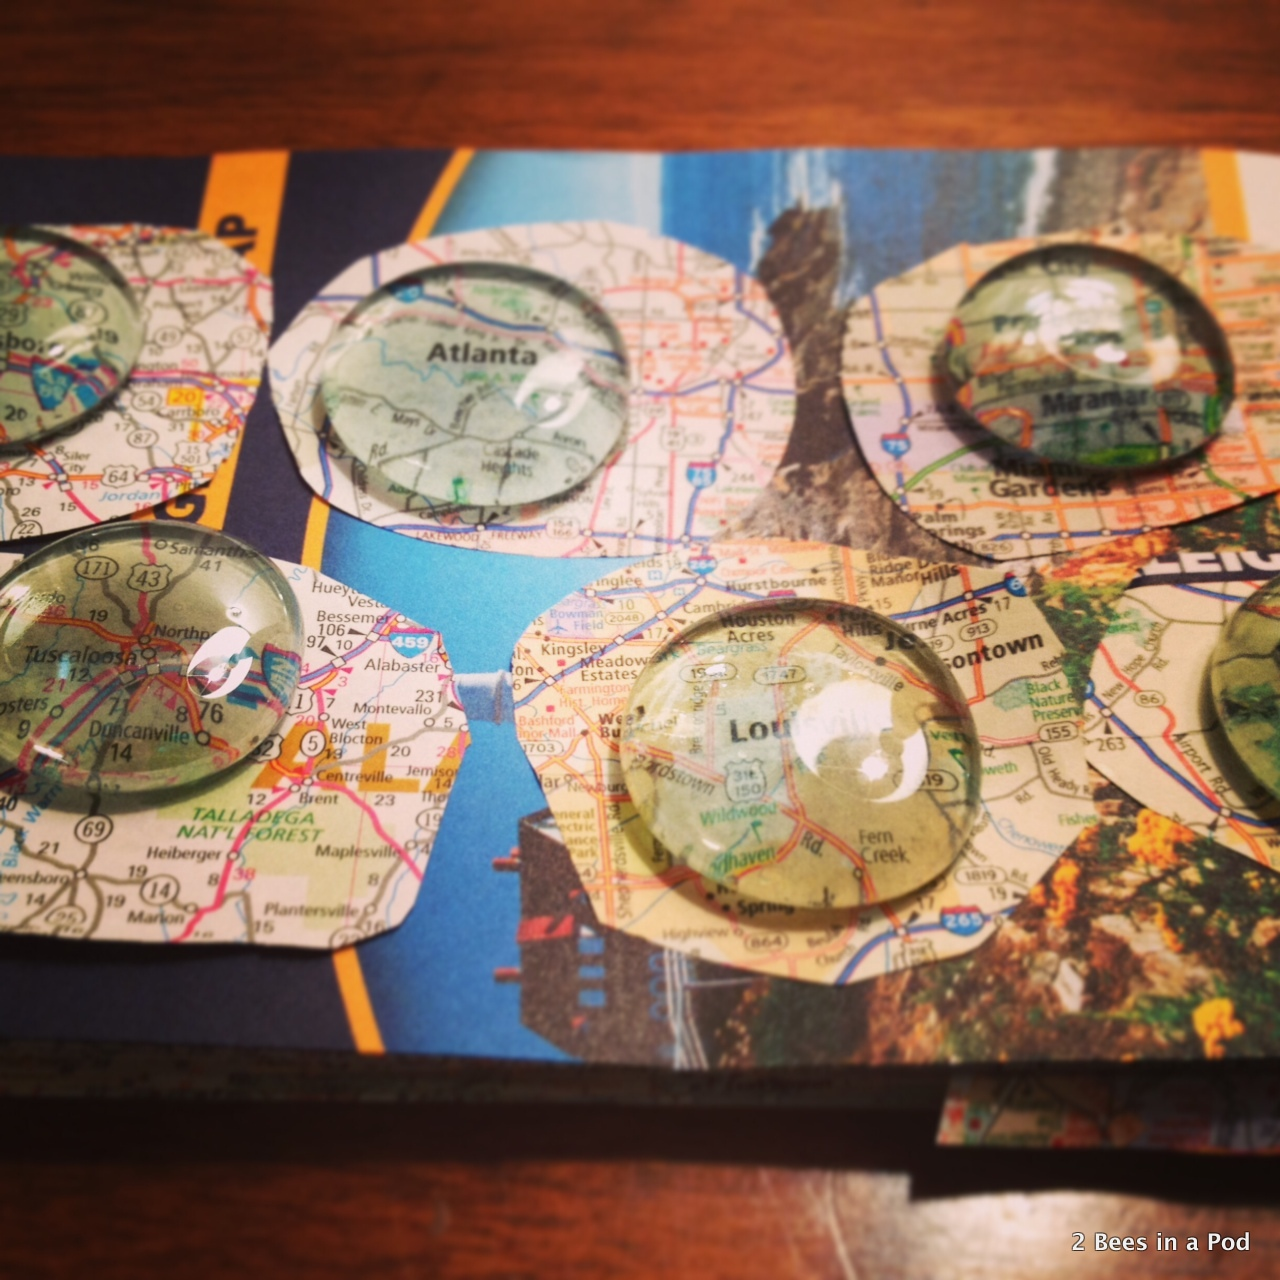 1-Letting the maps & glass beads dry